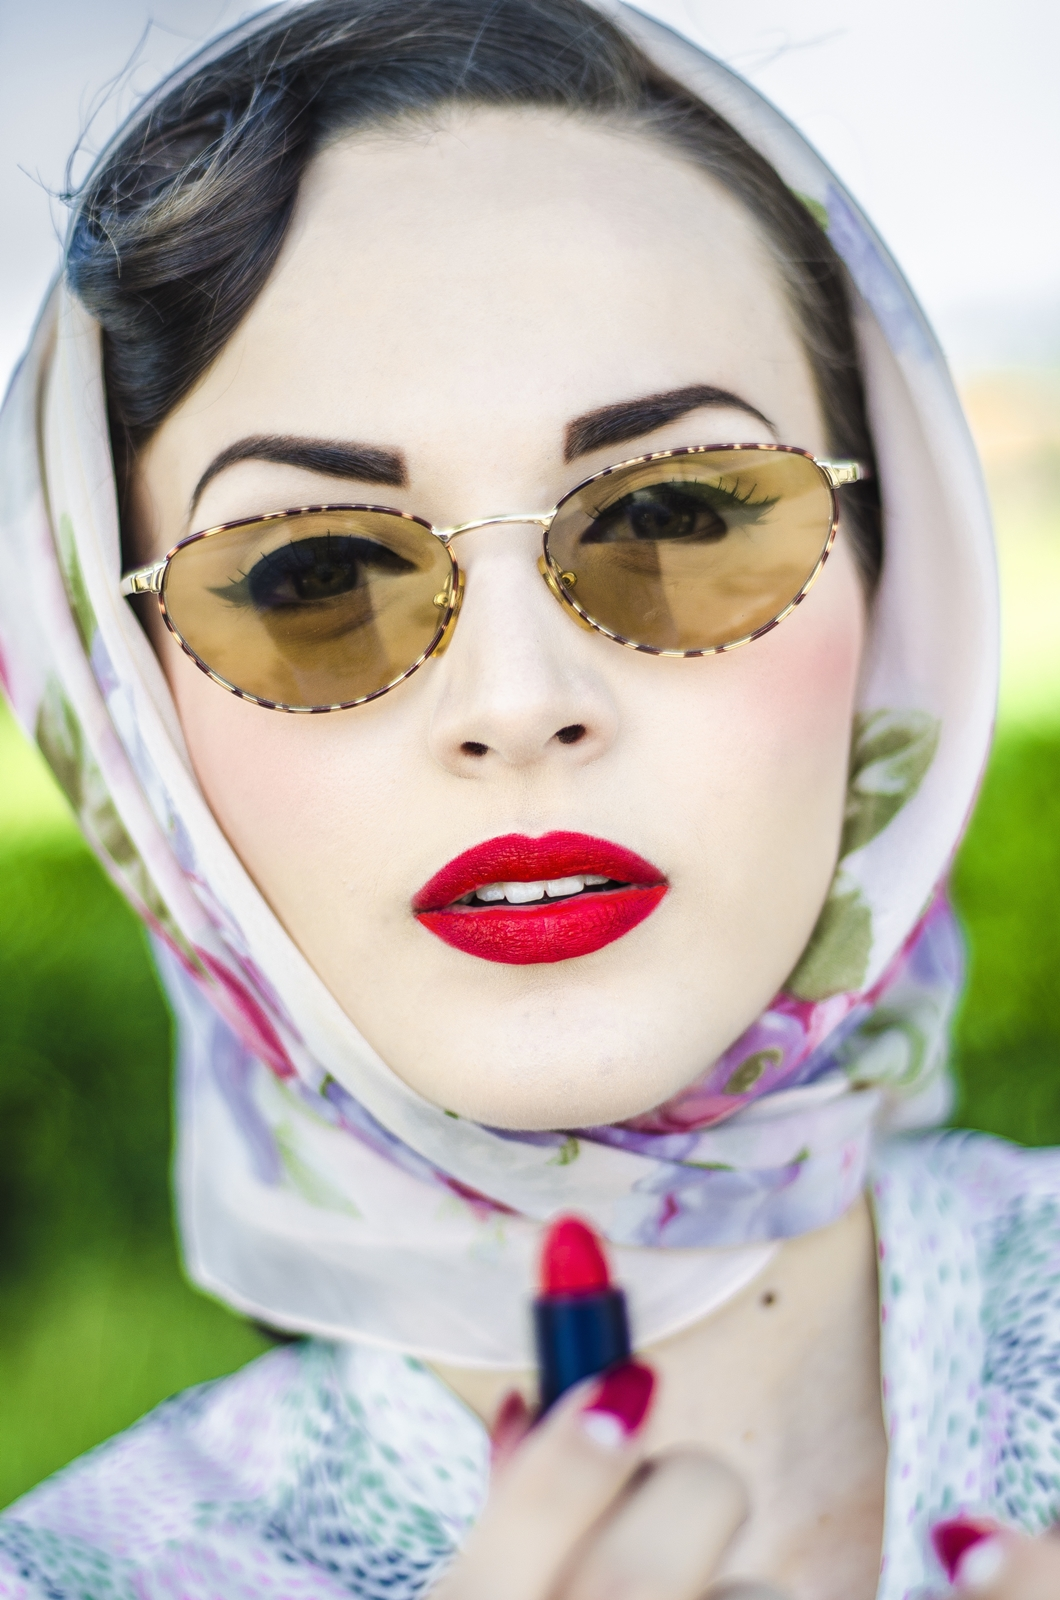 Headscarf and sunglasses is a inseparable attributes for me.